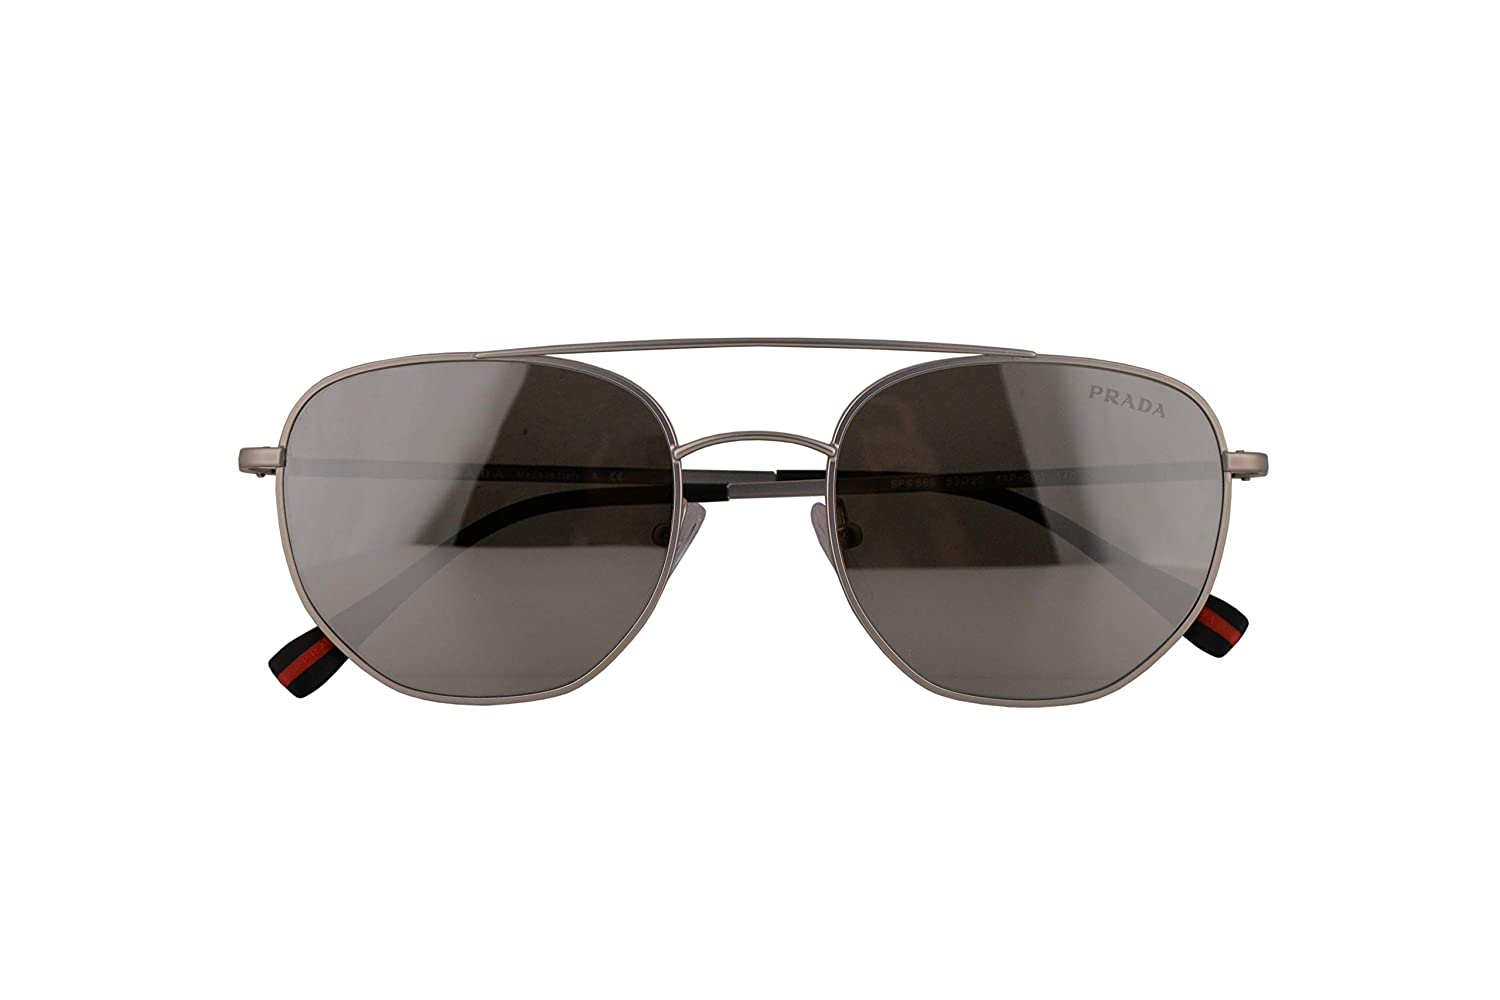 964357c0b Amazon.com: Prada PS56SS Sunglasses Matte Silver w/Light Grey Mirror Silver  53mm Lens 1AP2B0 PS 56SS SPS 56S SPS56S: Clothing